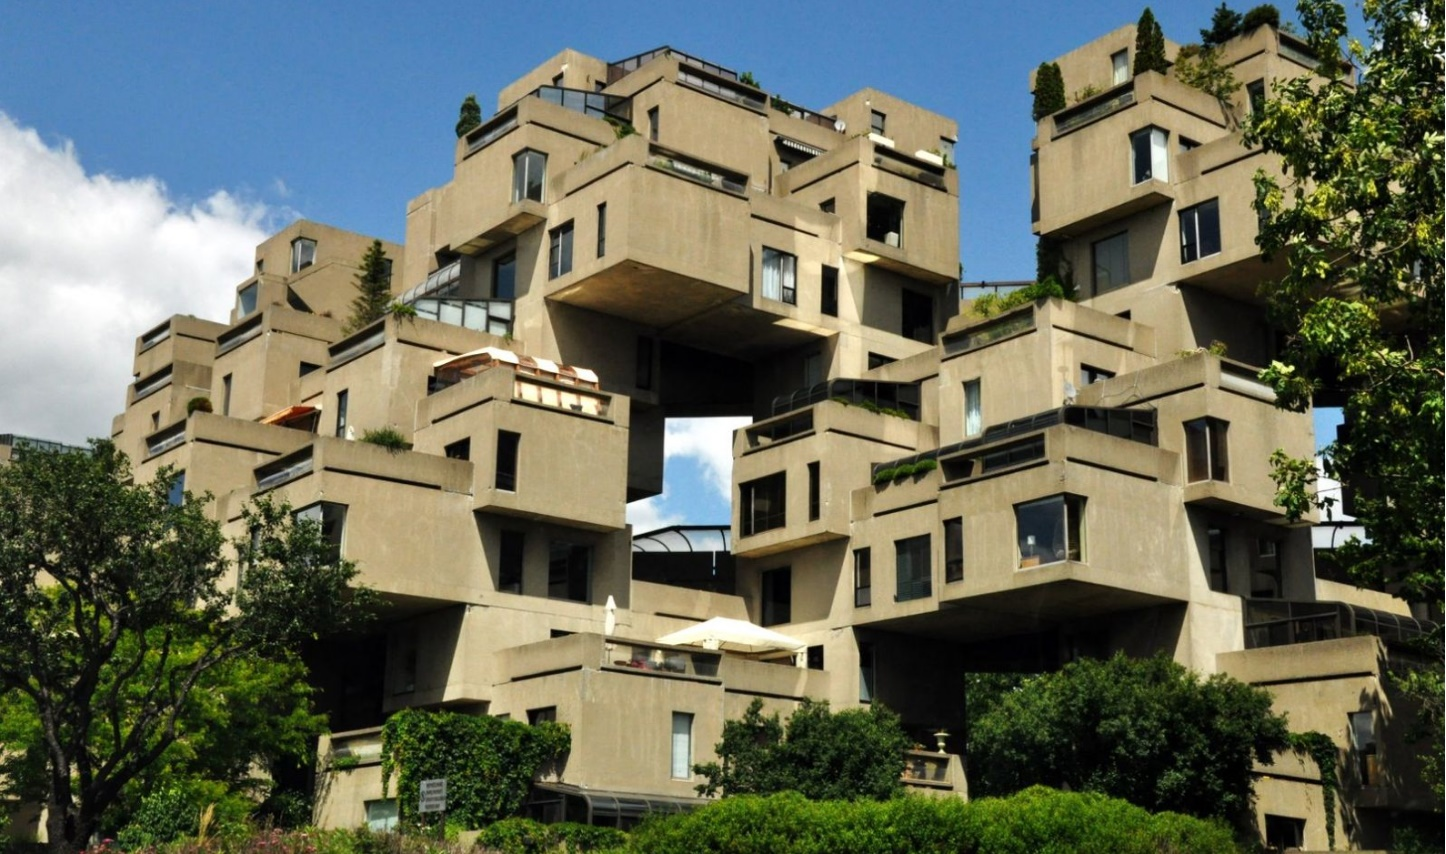 The Habitat Housing Complex, Canadá